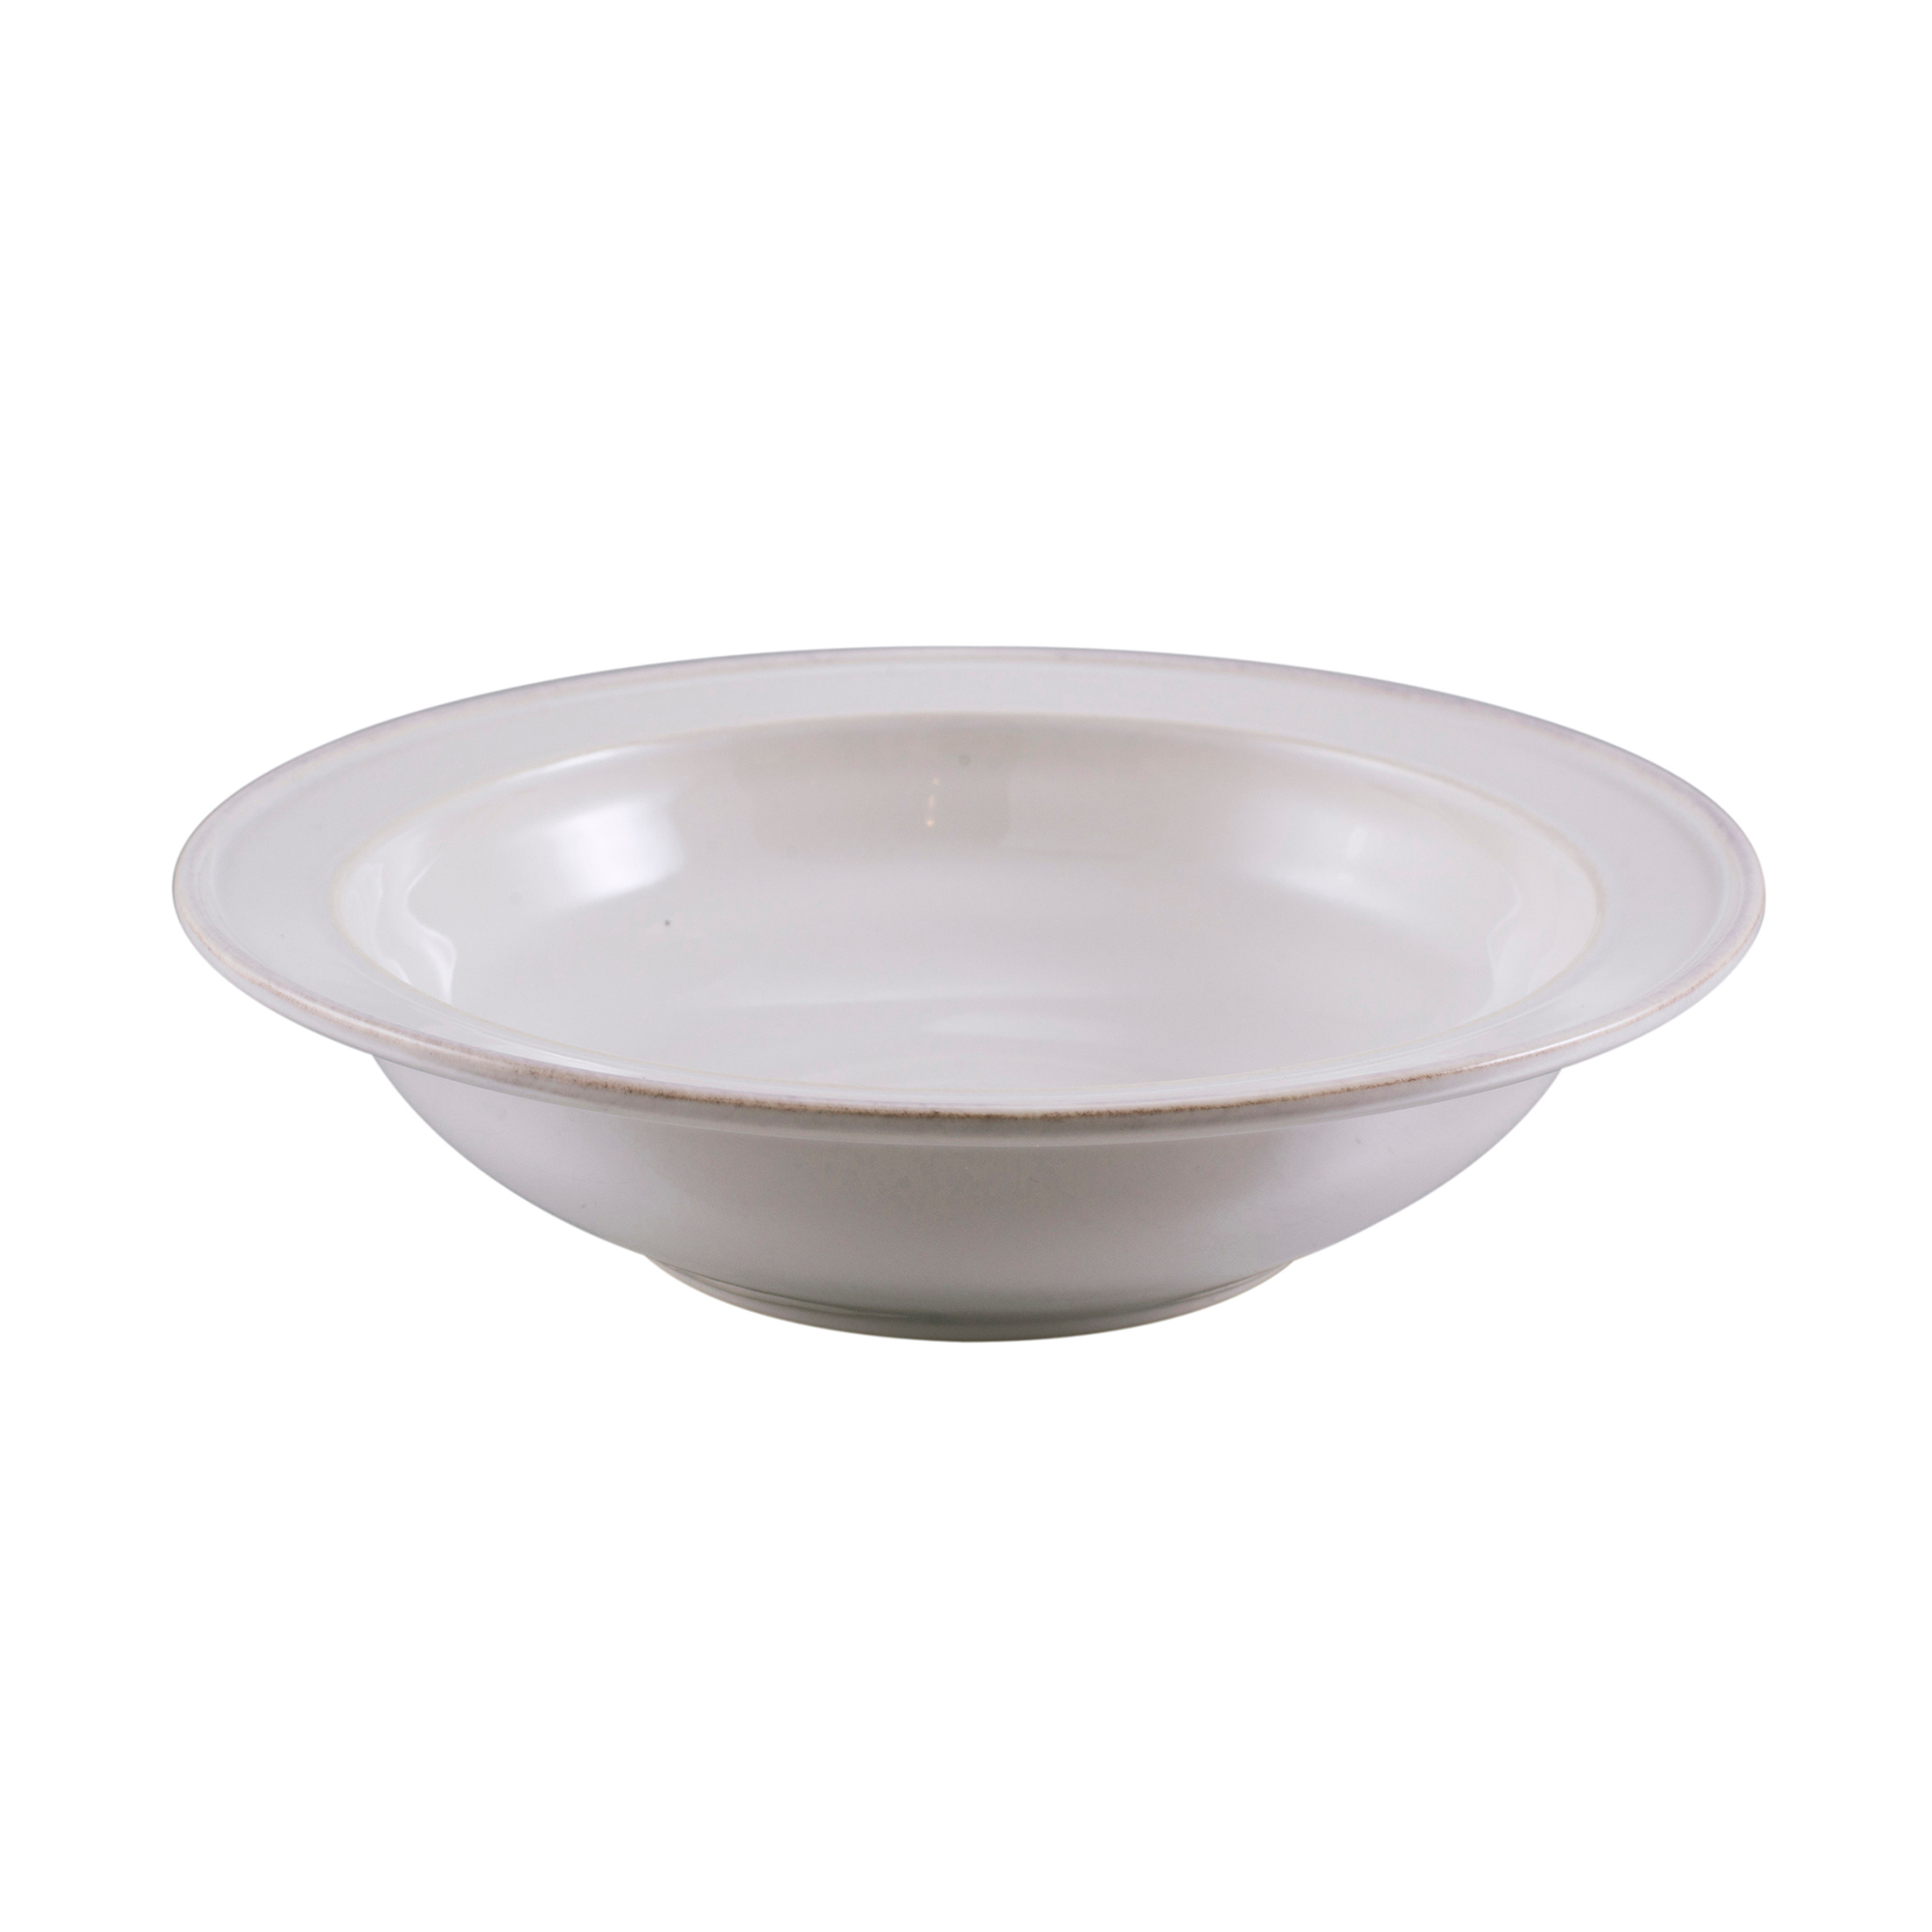 Simon Pearce Hartland Ridge Pasta Bowl